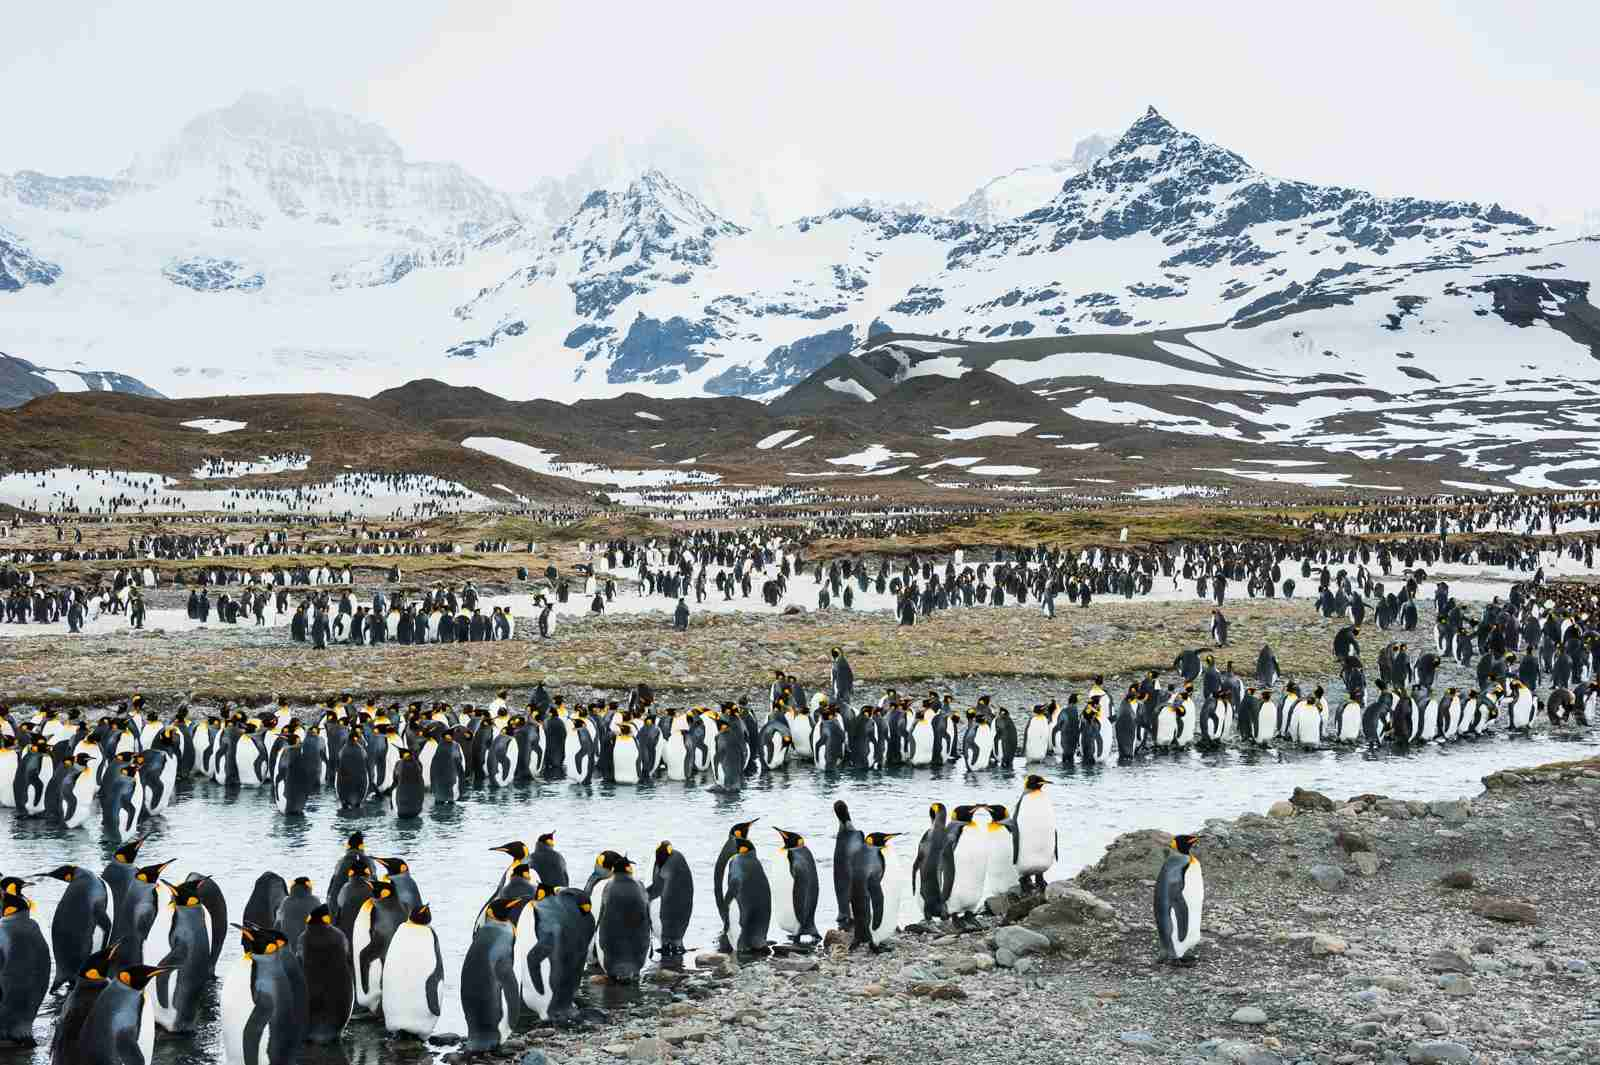 Have you ever been to see the penguins in Antarctica? (Photo via Shutterstock)